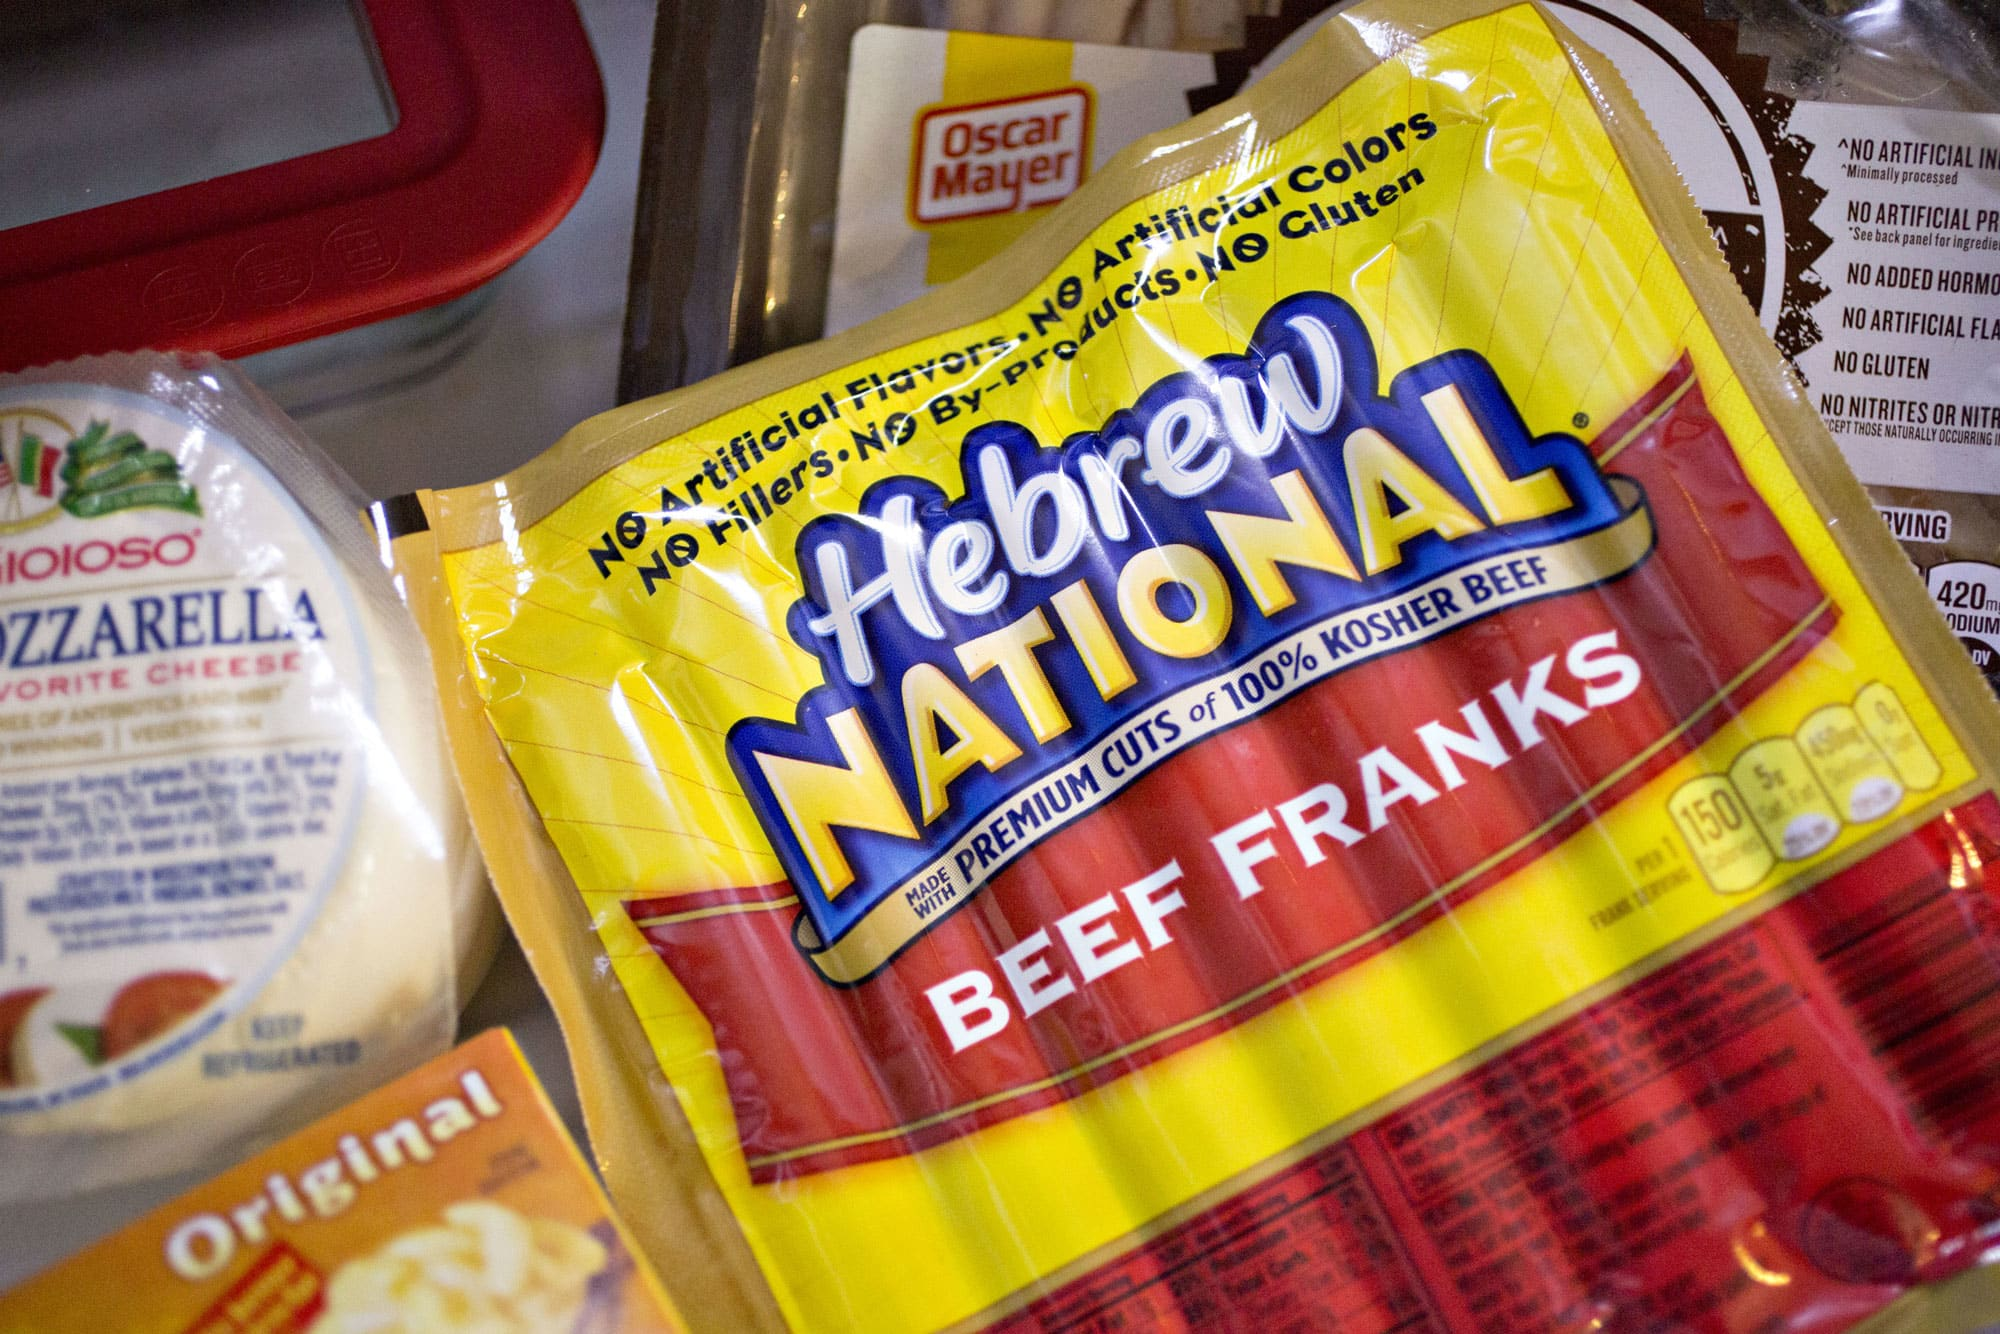 A package of ConAgra Foods' Hebrew National brand beef franks.